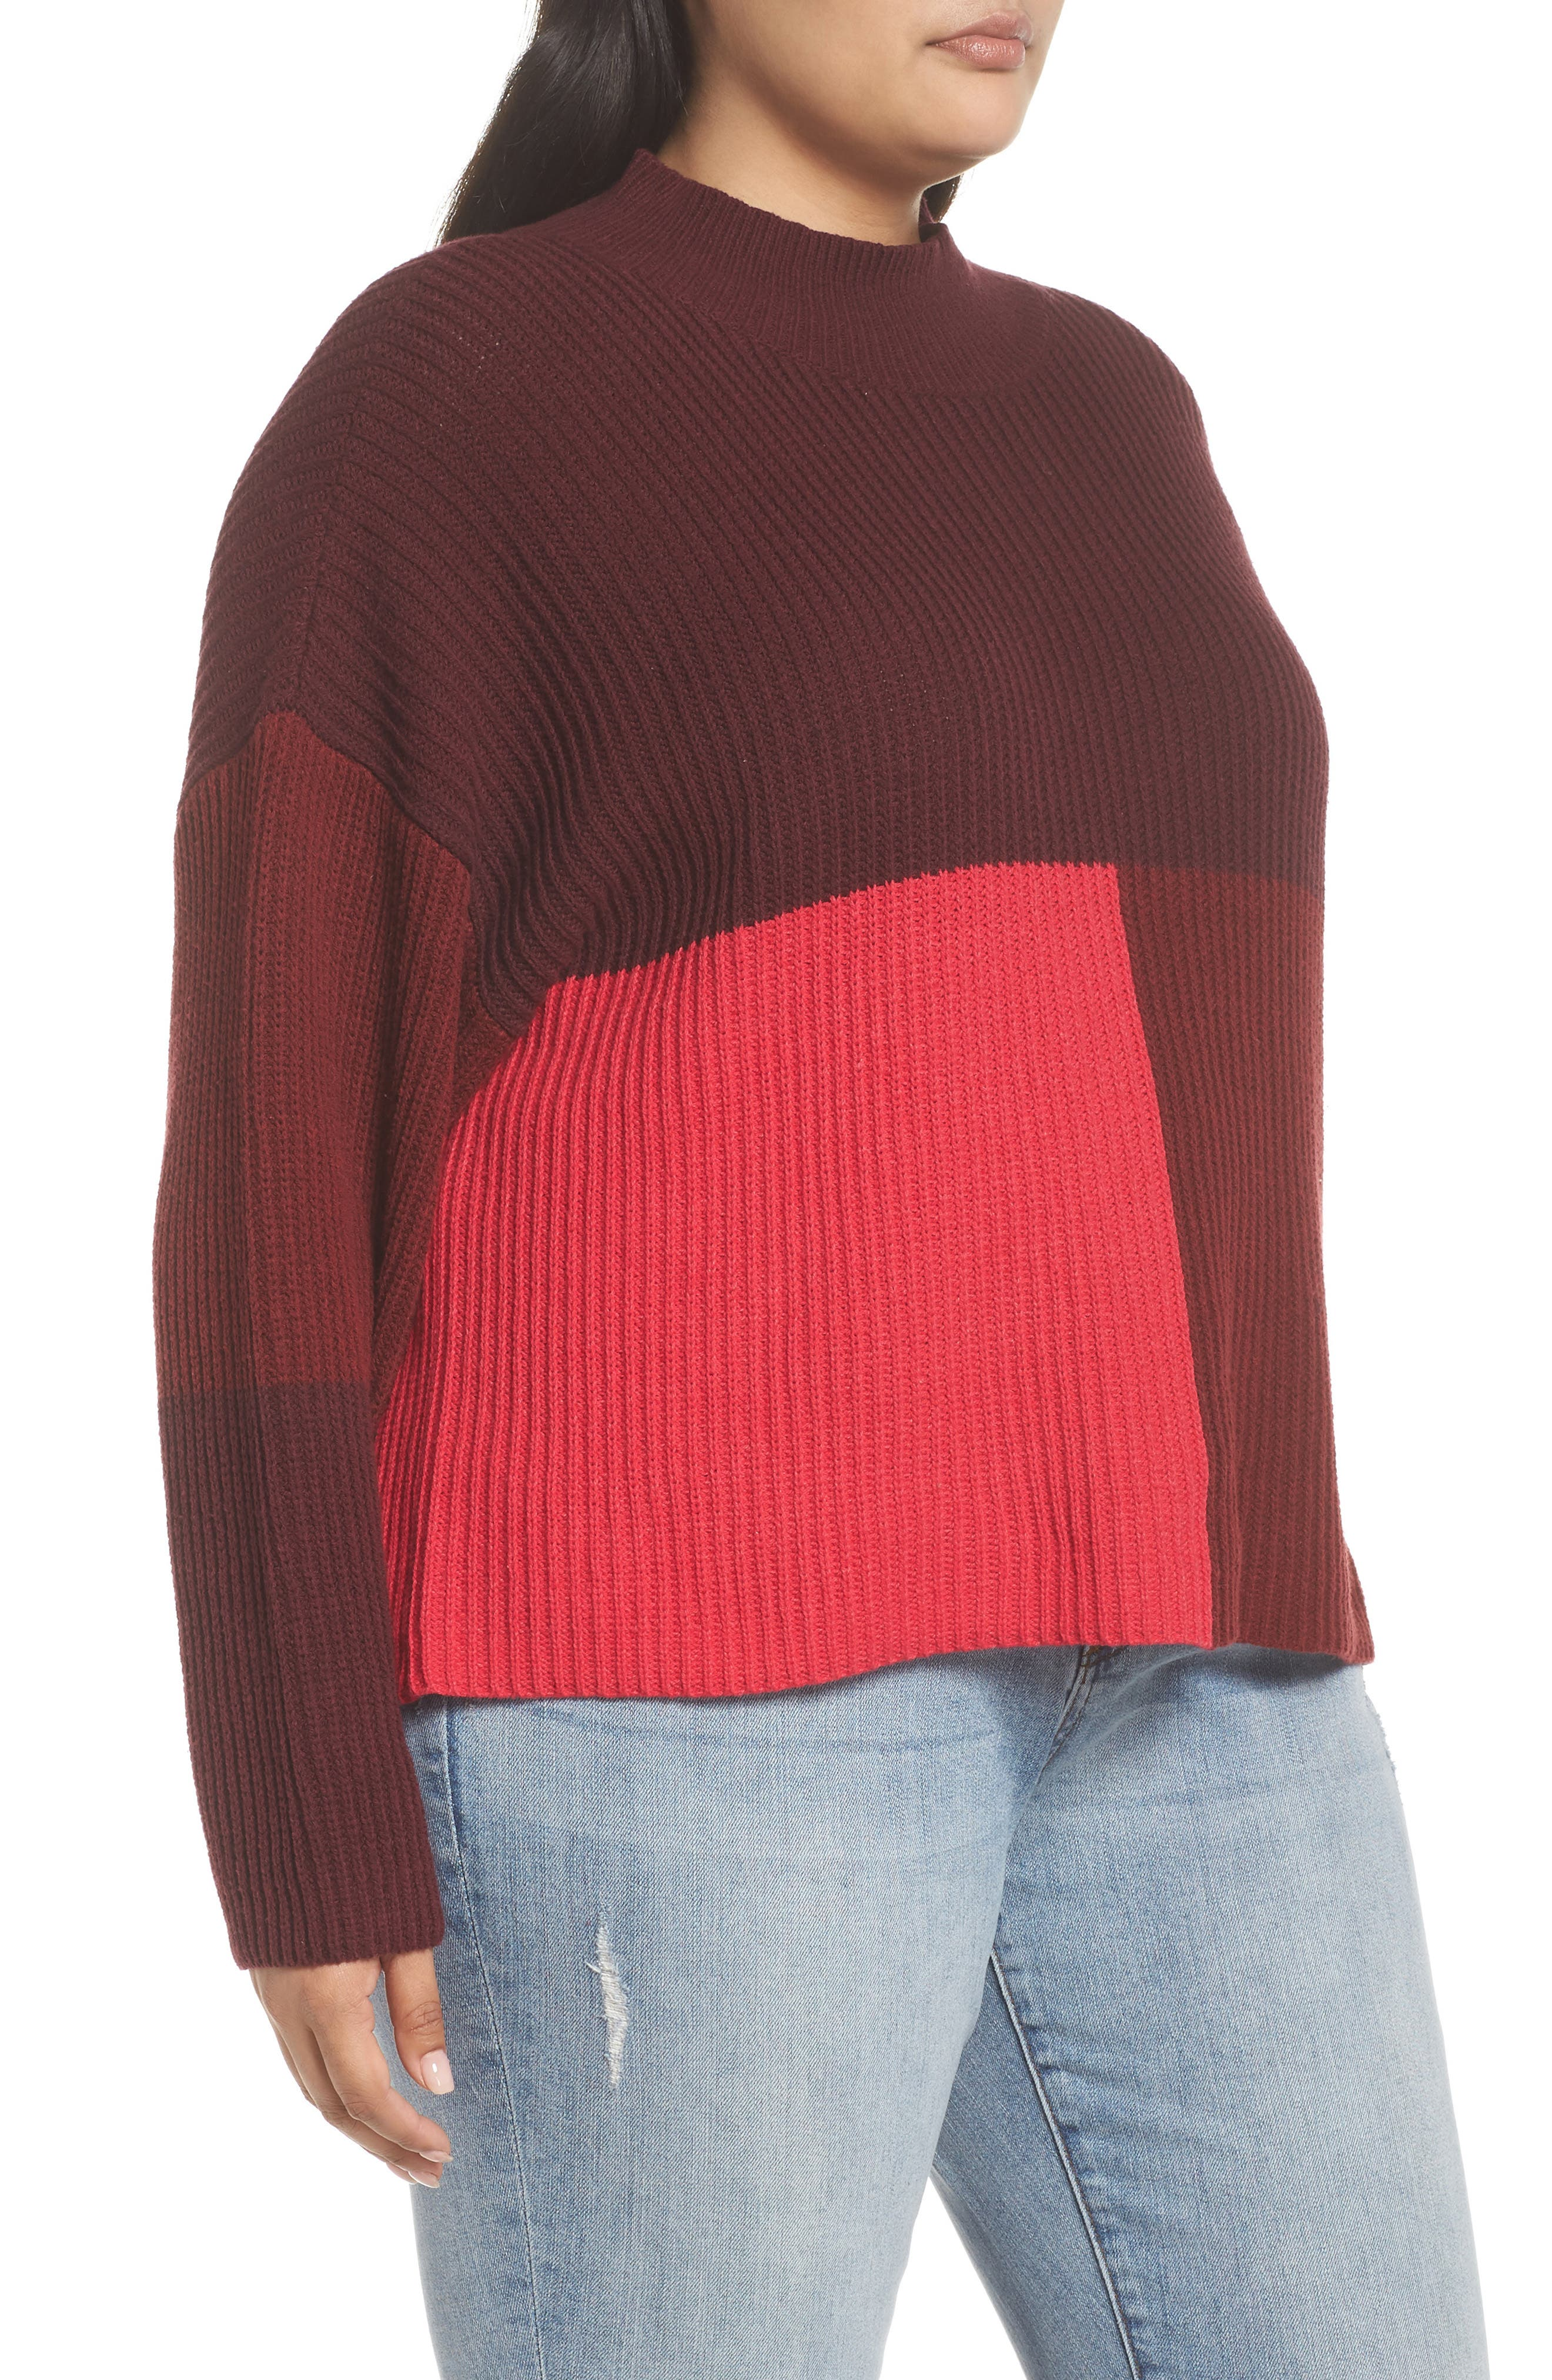 Mock Neck Colorblock Sweater,                             Alternate thumbnail 9, color,                             RED RUMBA COLORBLOCK